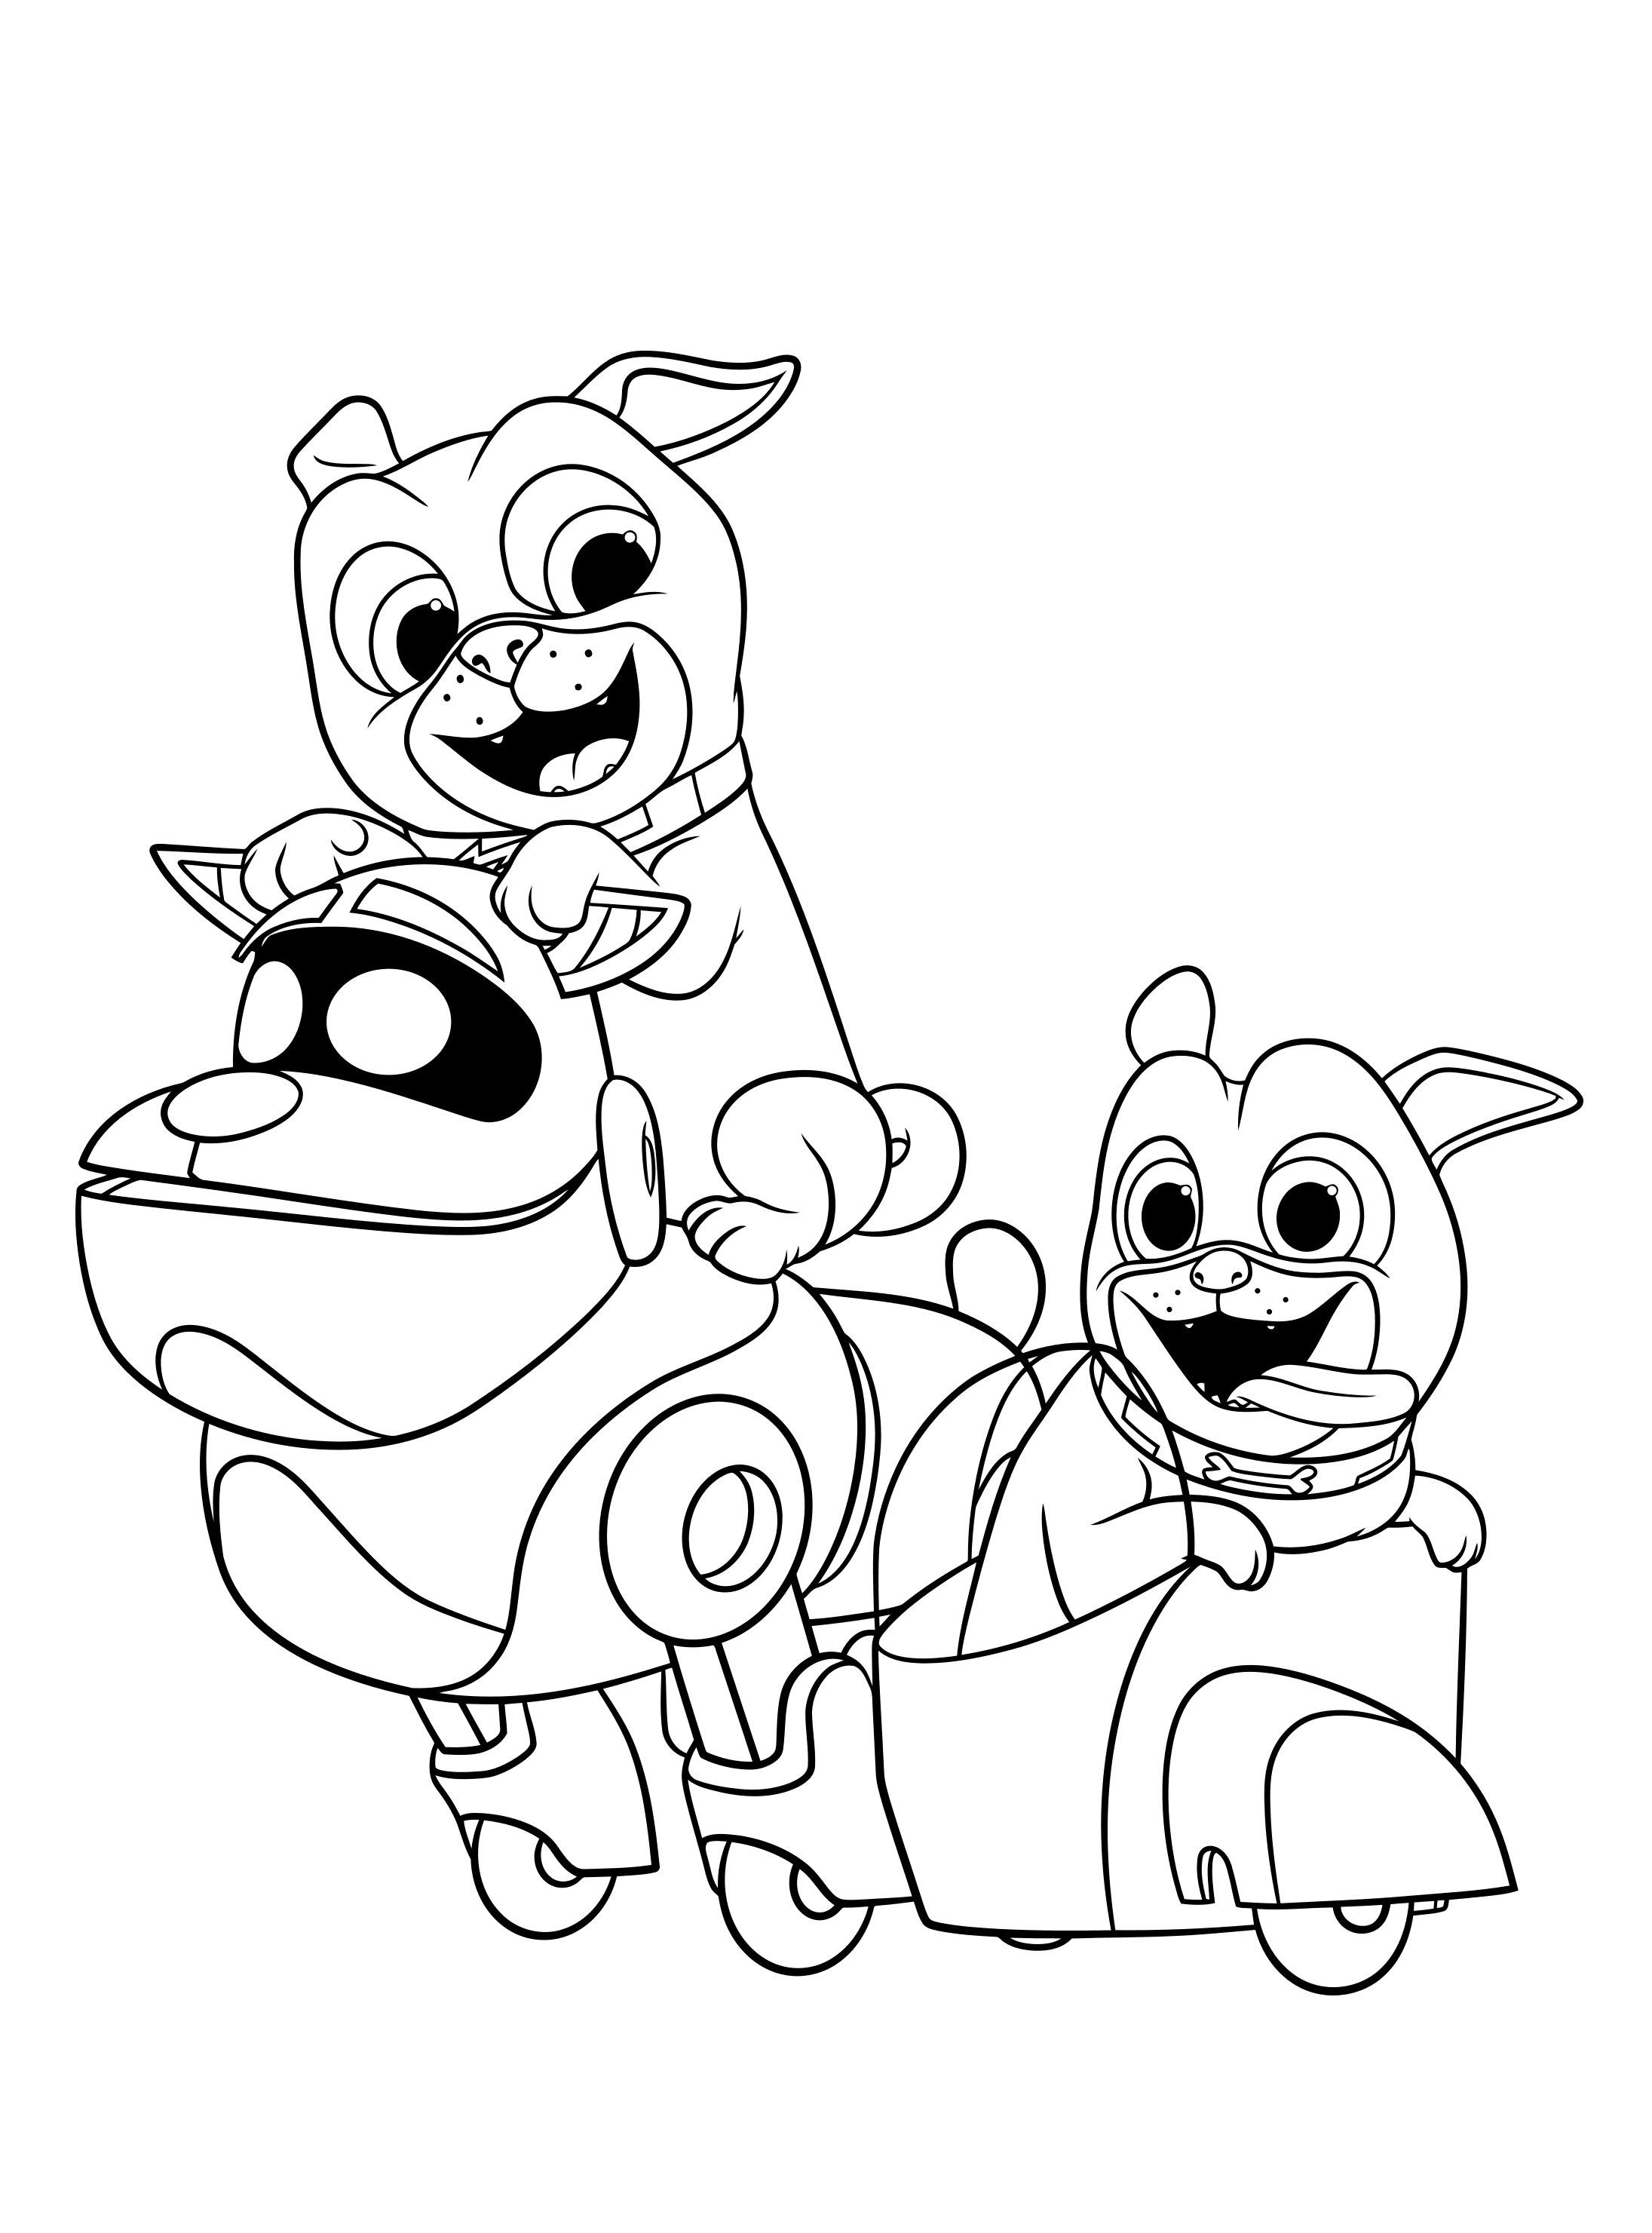 puppy pals coloring pages Puppy Dog Pals Coloring Pages – Through the thousands of photos on  puppy pals coloring pages